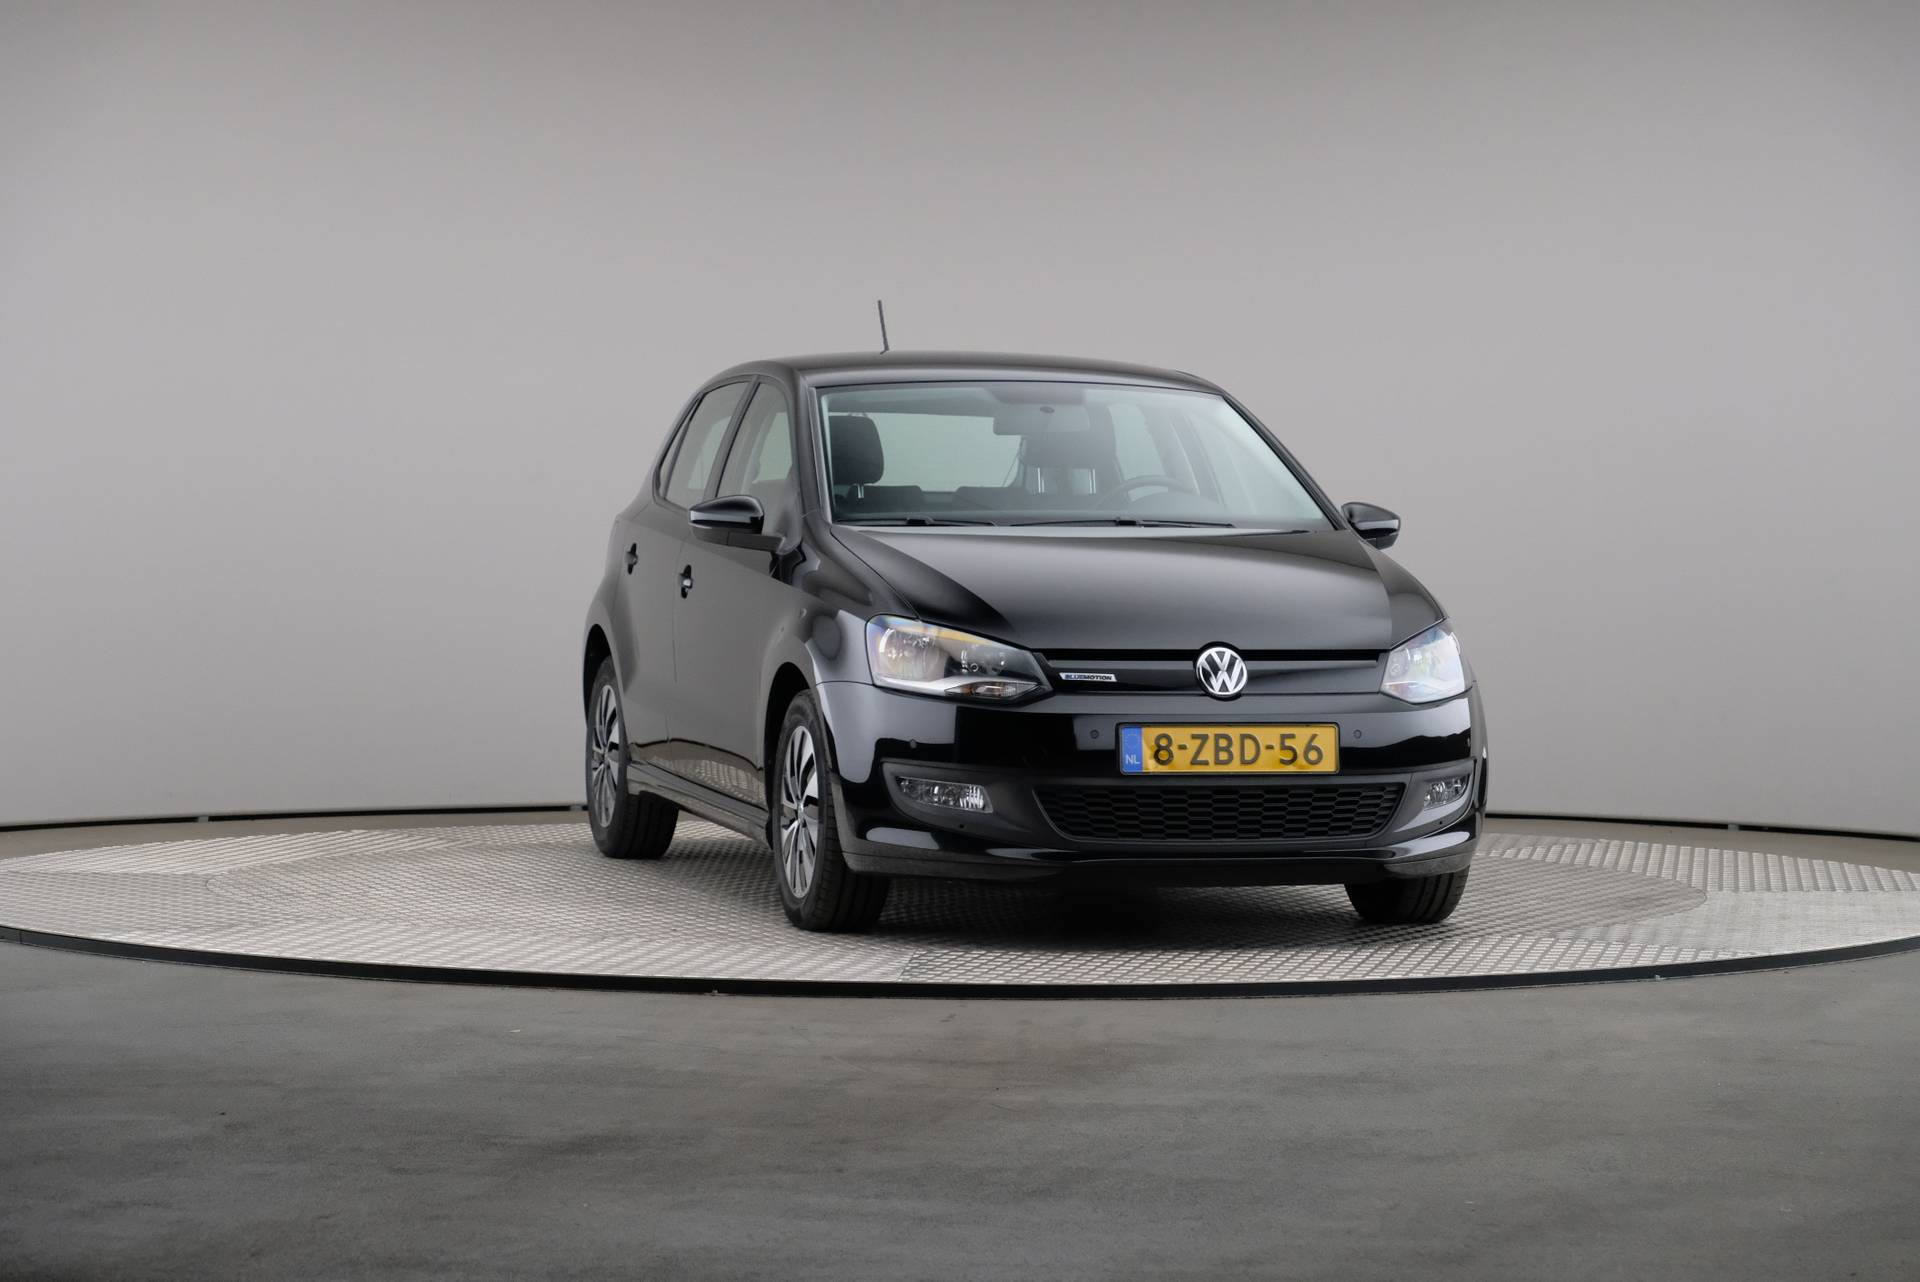 Volkswagen Polo 1.4 TDI BlueMotion, Executive, Airco, Navigatie, 360-image31